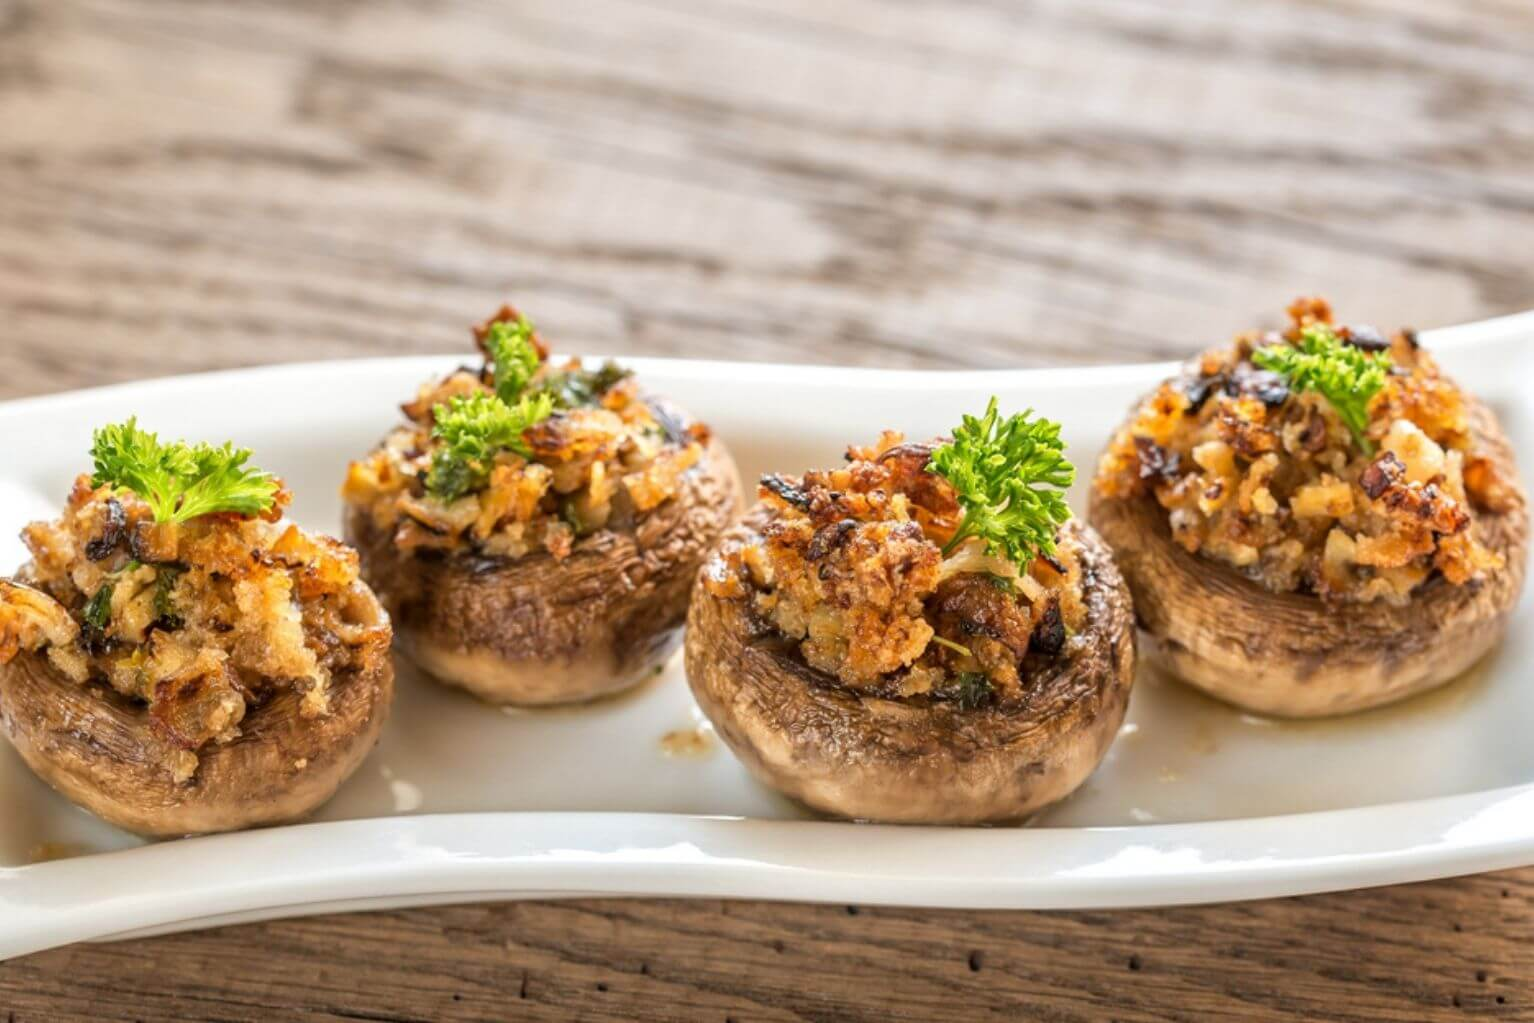 White rectangular plate with four stuffed mushrooms on top on a wooden table.